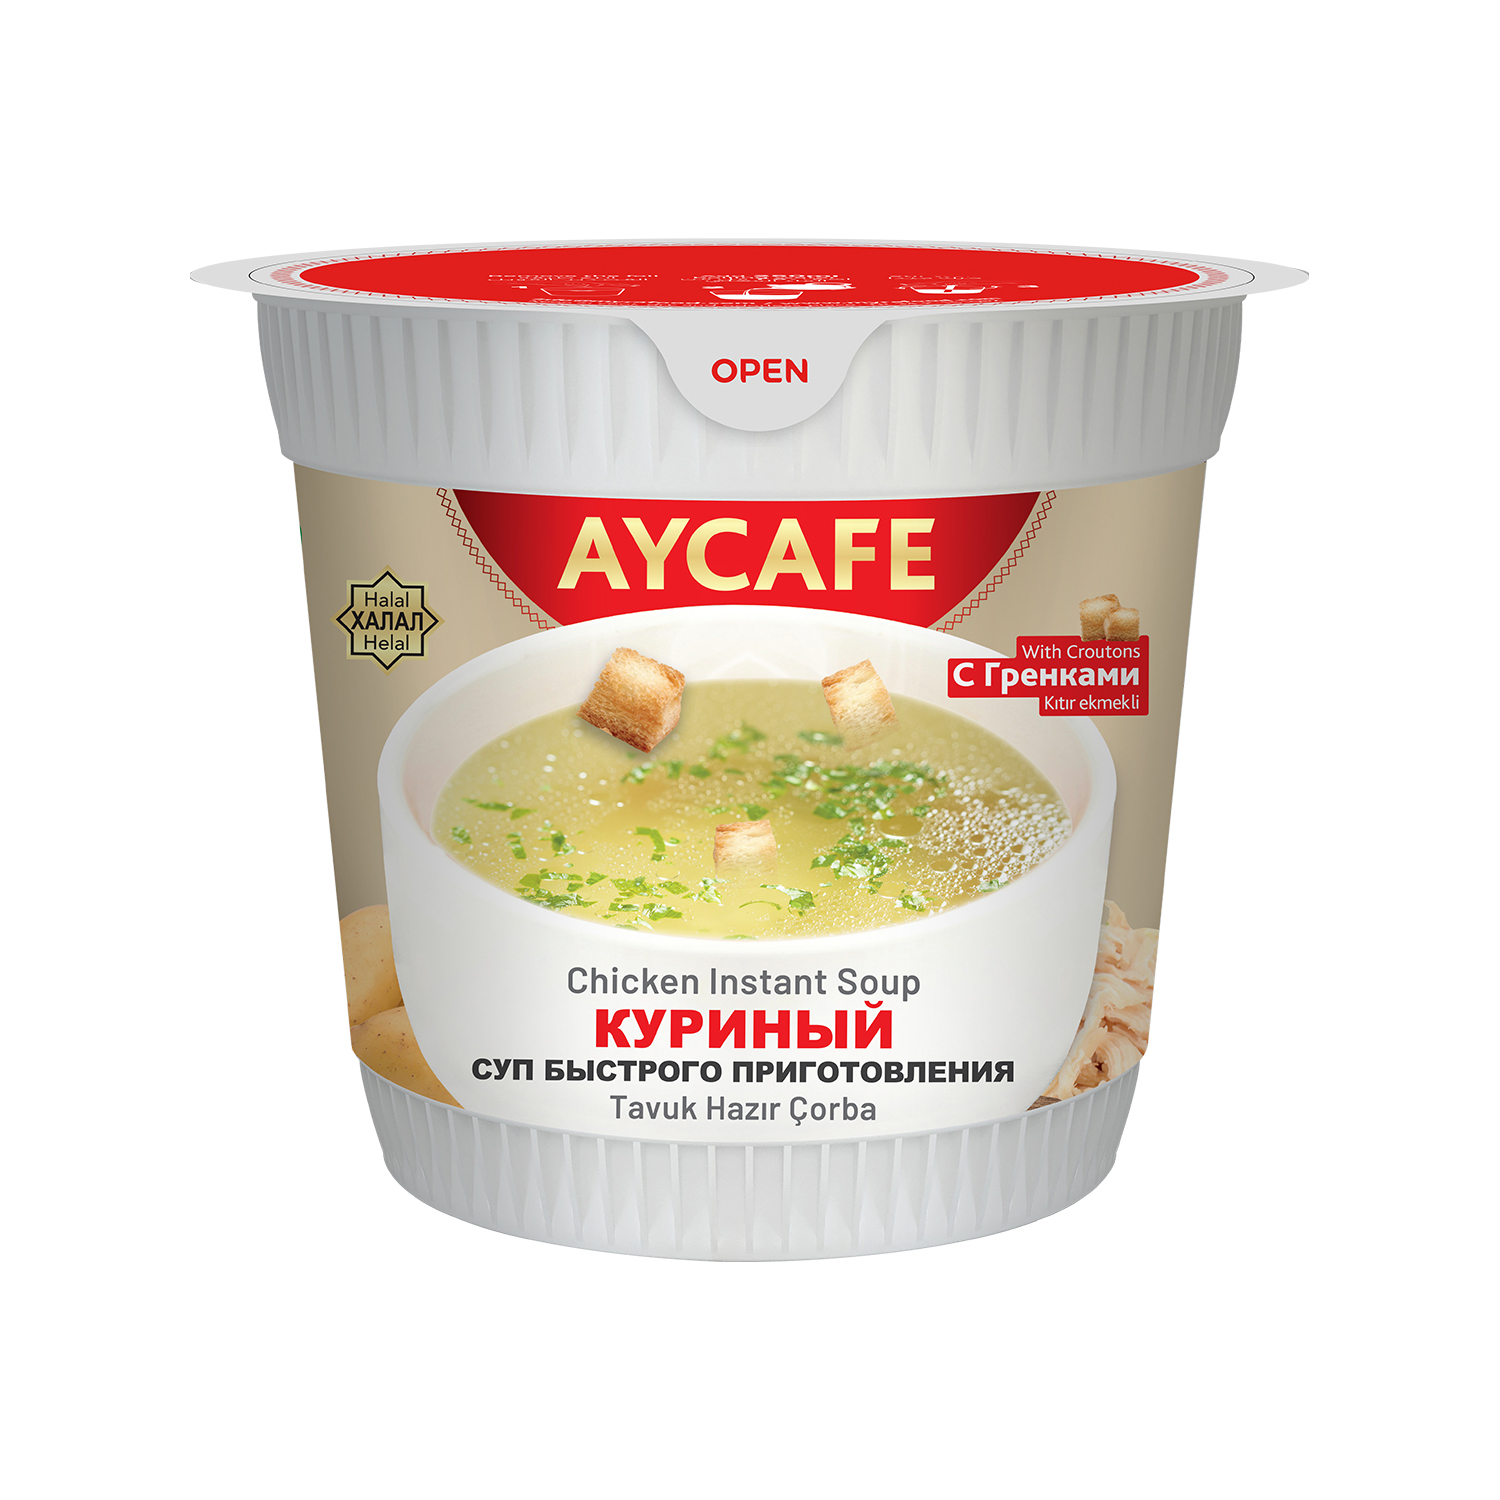 Aycafe Chicken Instant Soup In Cup